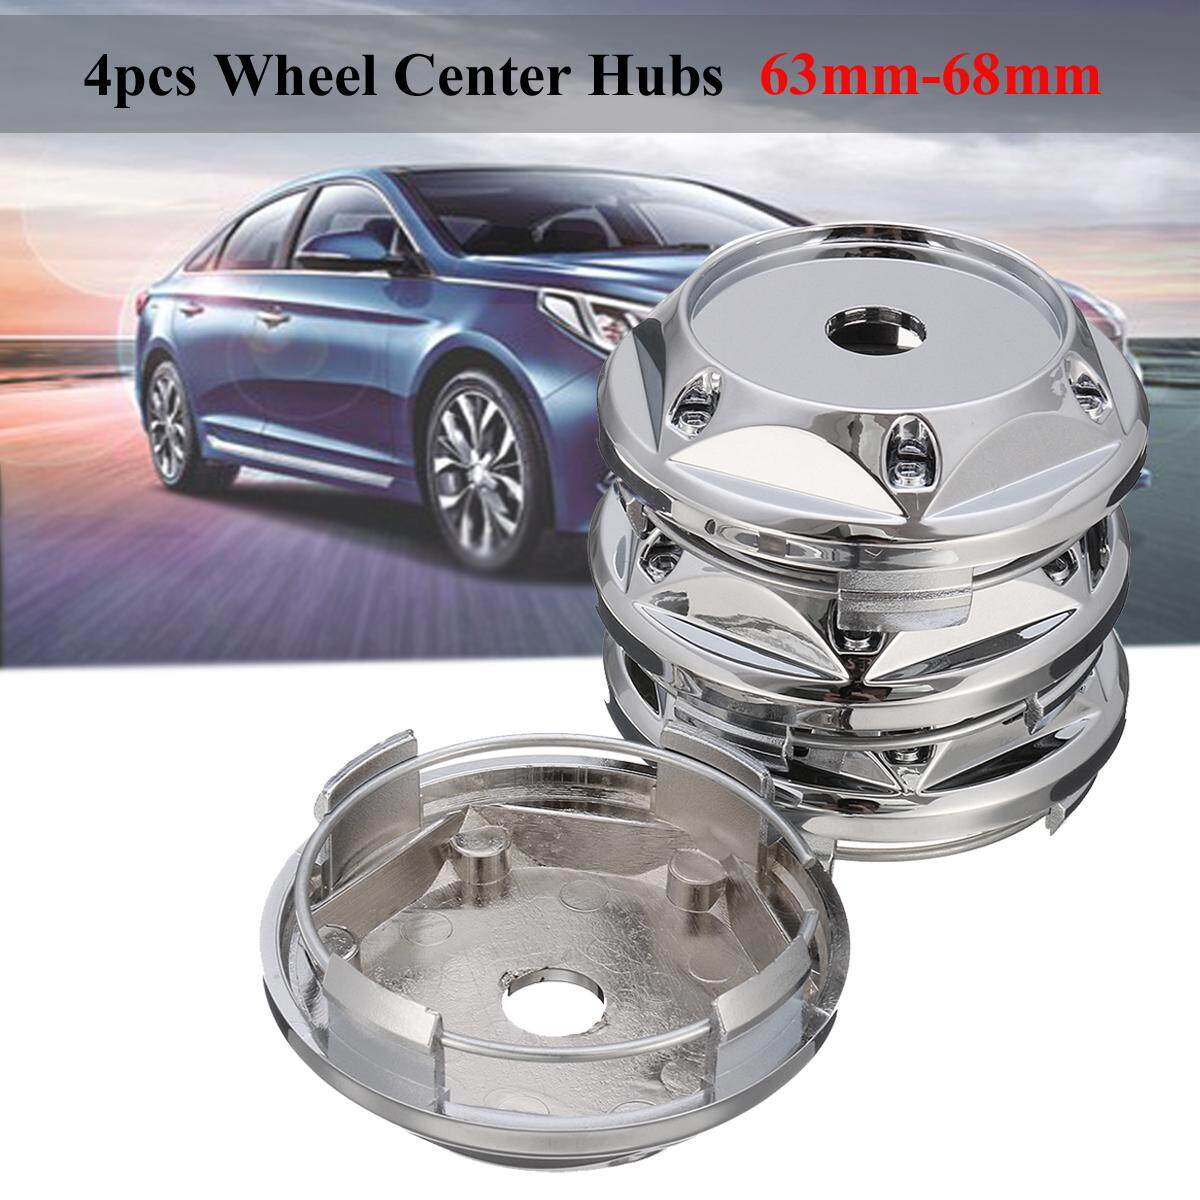 hight resolution of 4pcs set 63mm 68mm wheel center hub caps covers